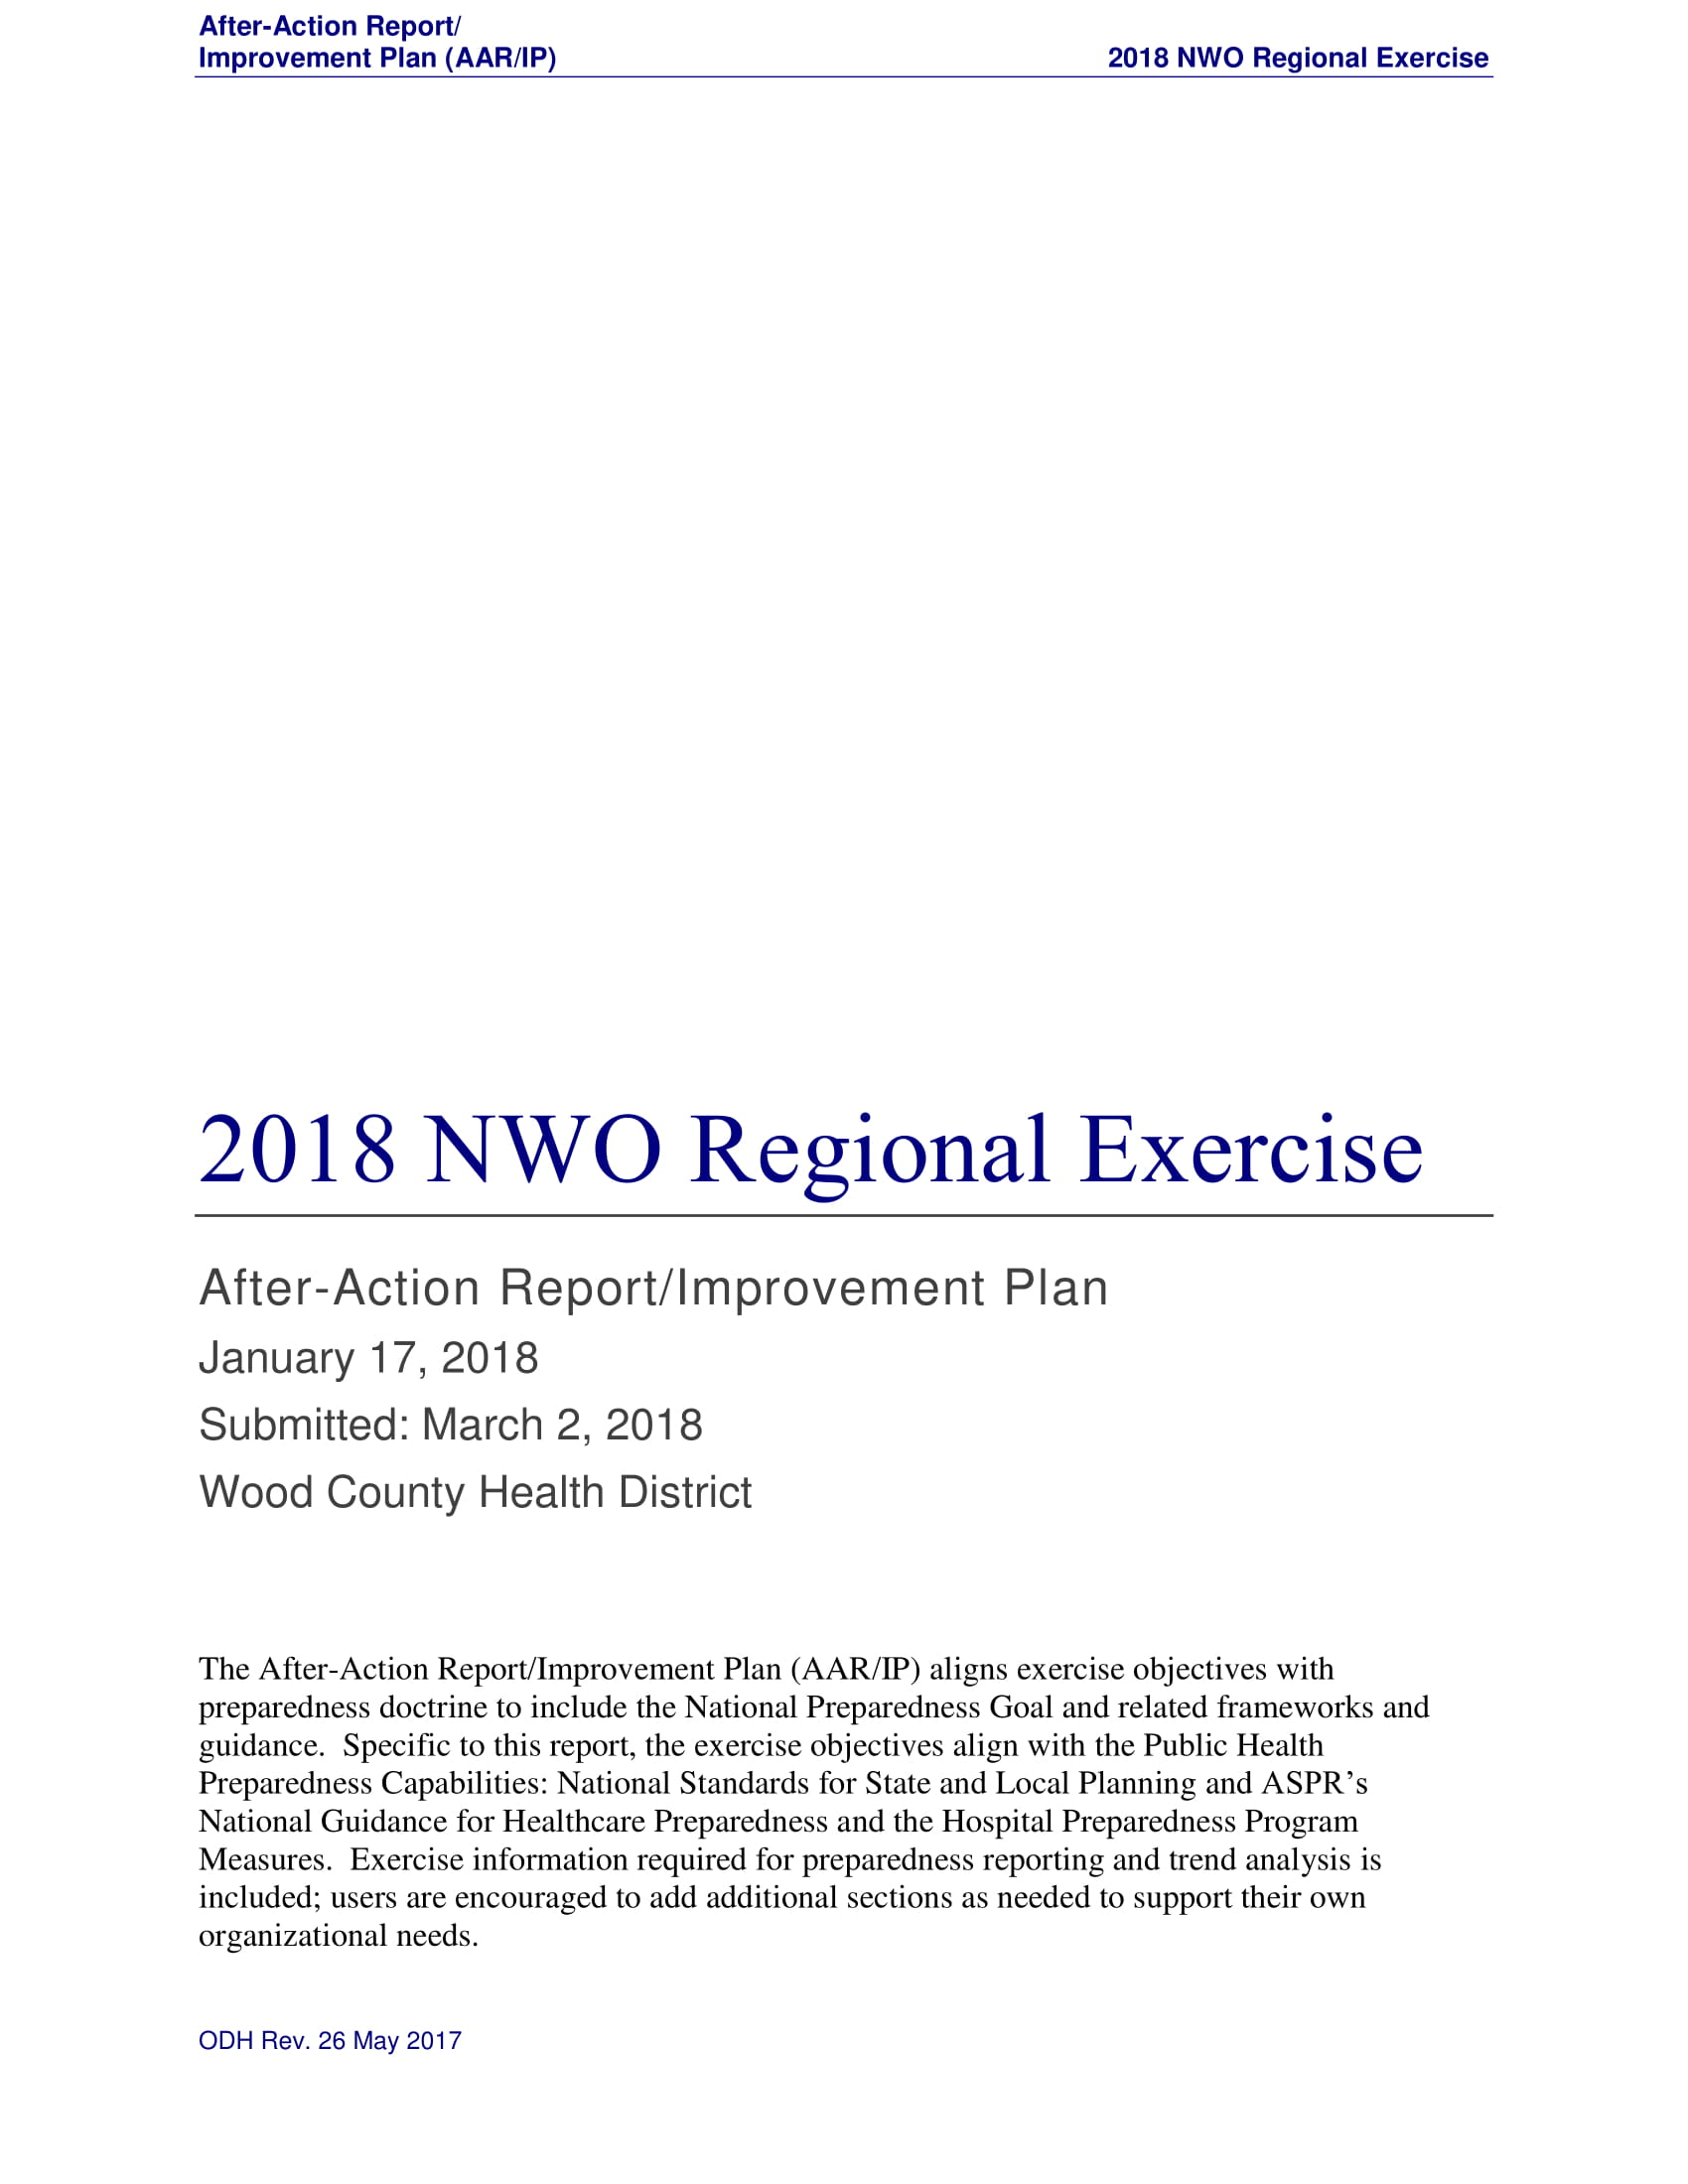 after action report with improvement plan example 01